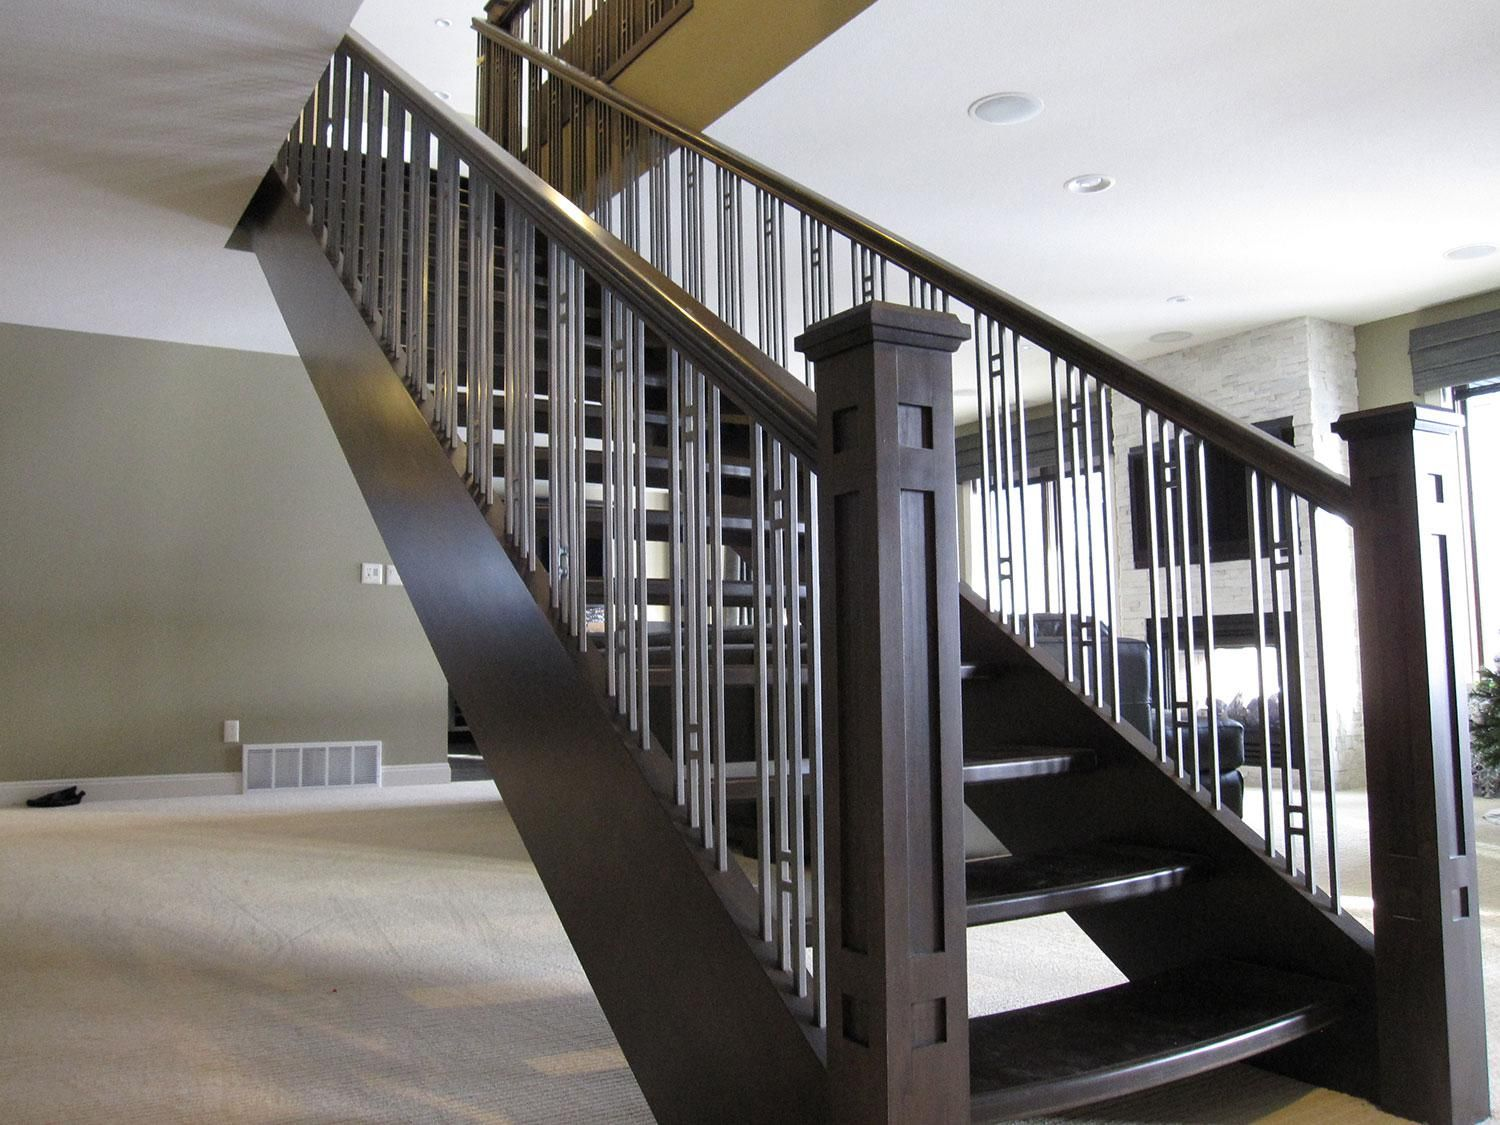 Accent Your Stairs Using Metal Stair Railing Newels And Metal Stair Railing With Hand Railing